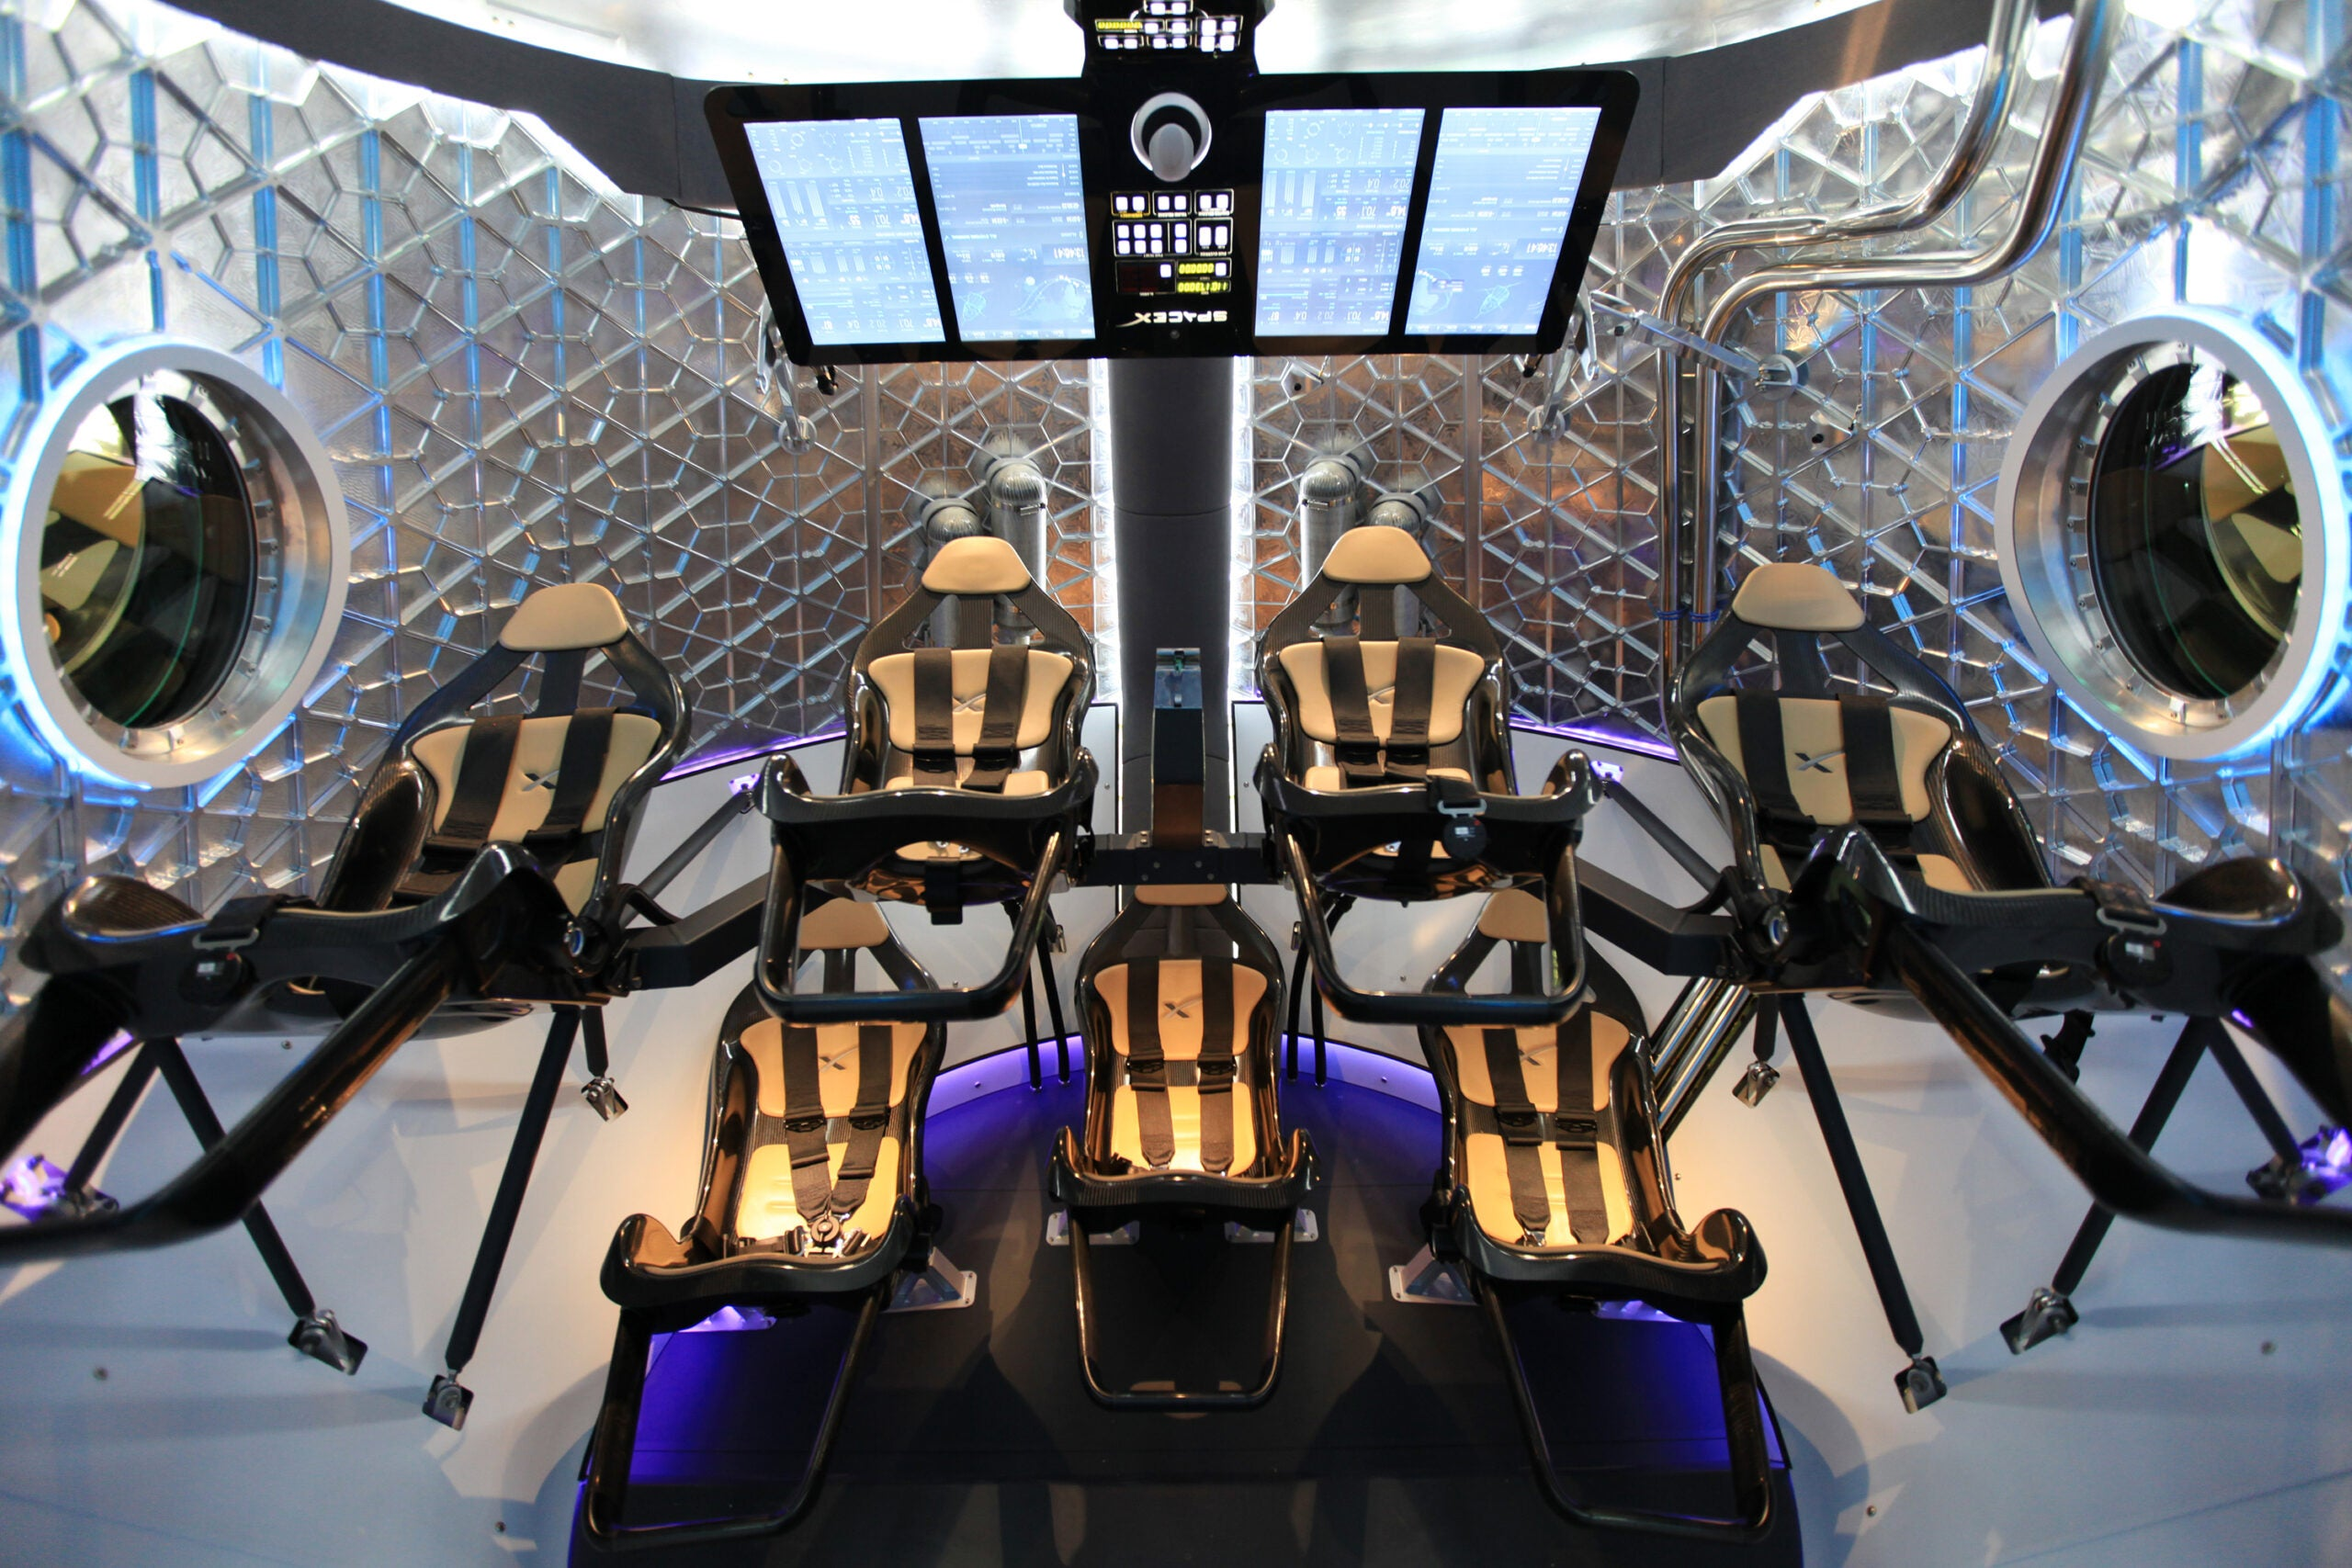 Sierra Nevada Protest Halts Production Of SpaceX And Boeing Space Taxis